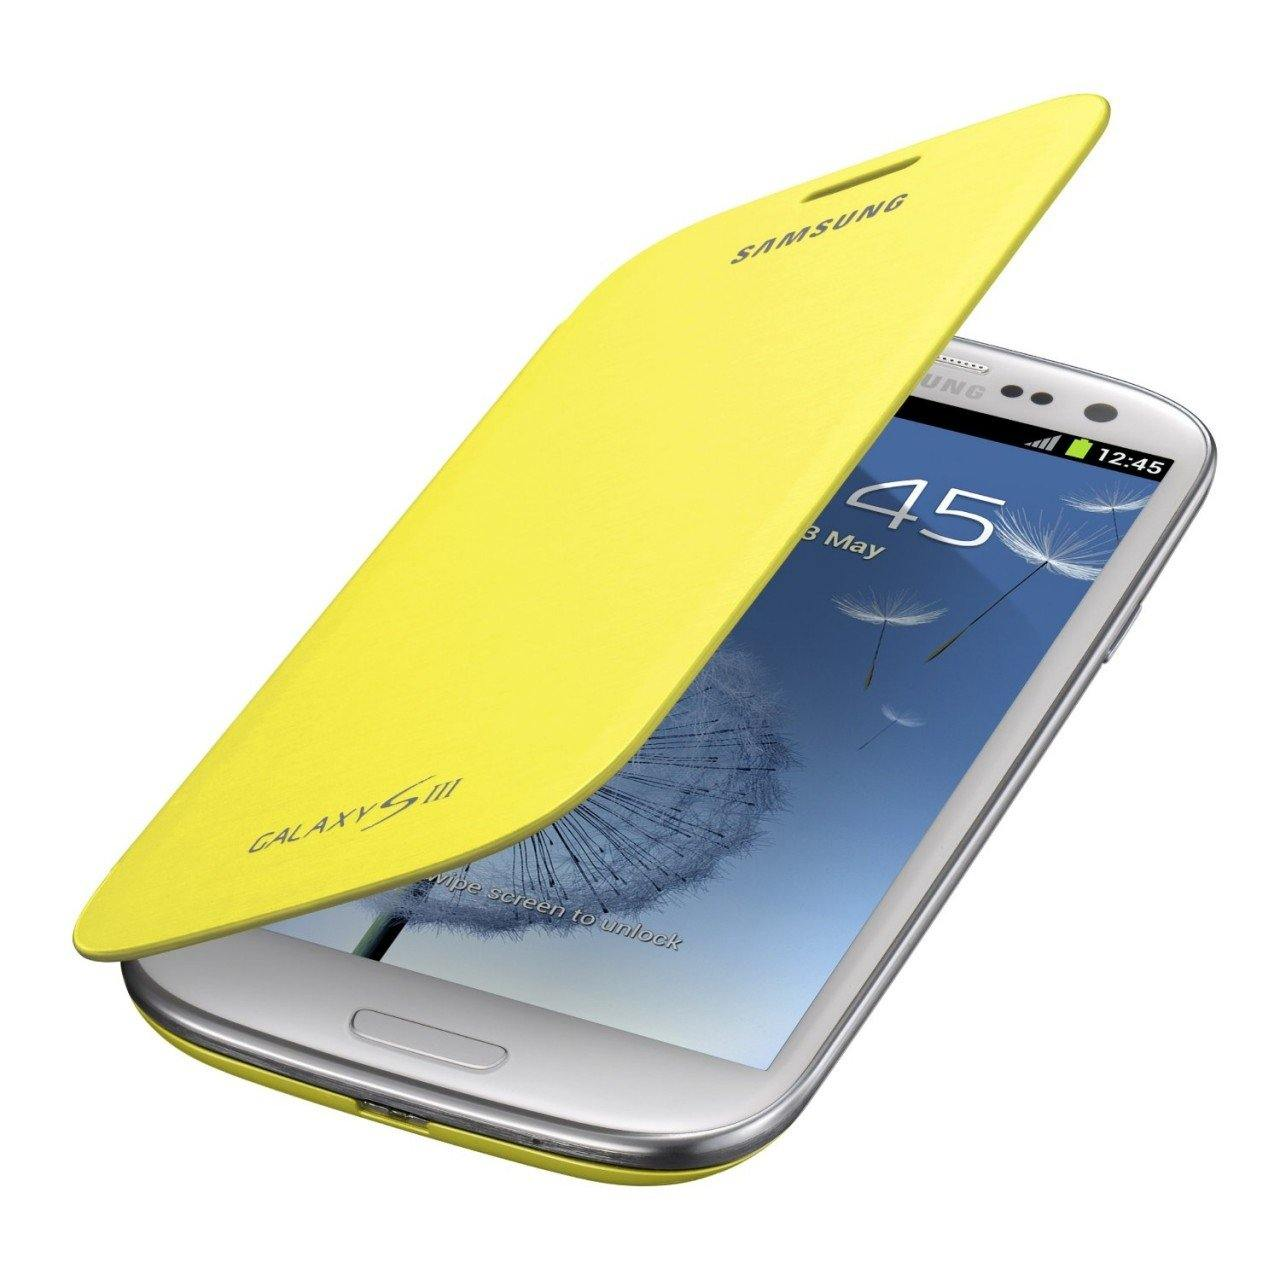 Genuine Samsung Galaxy S3 Flip Cover - Yellow - EFC-1G6FYECSTD